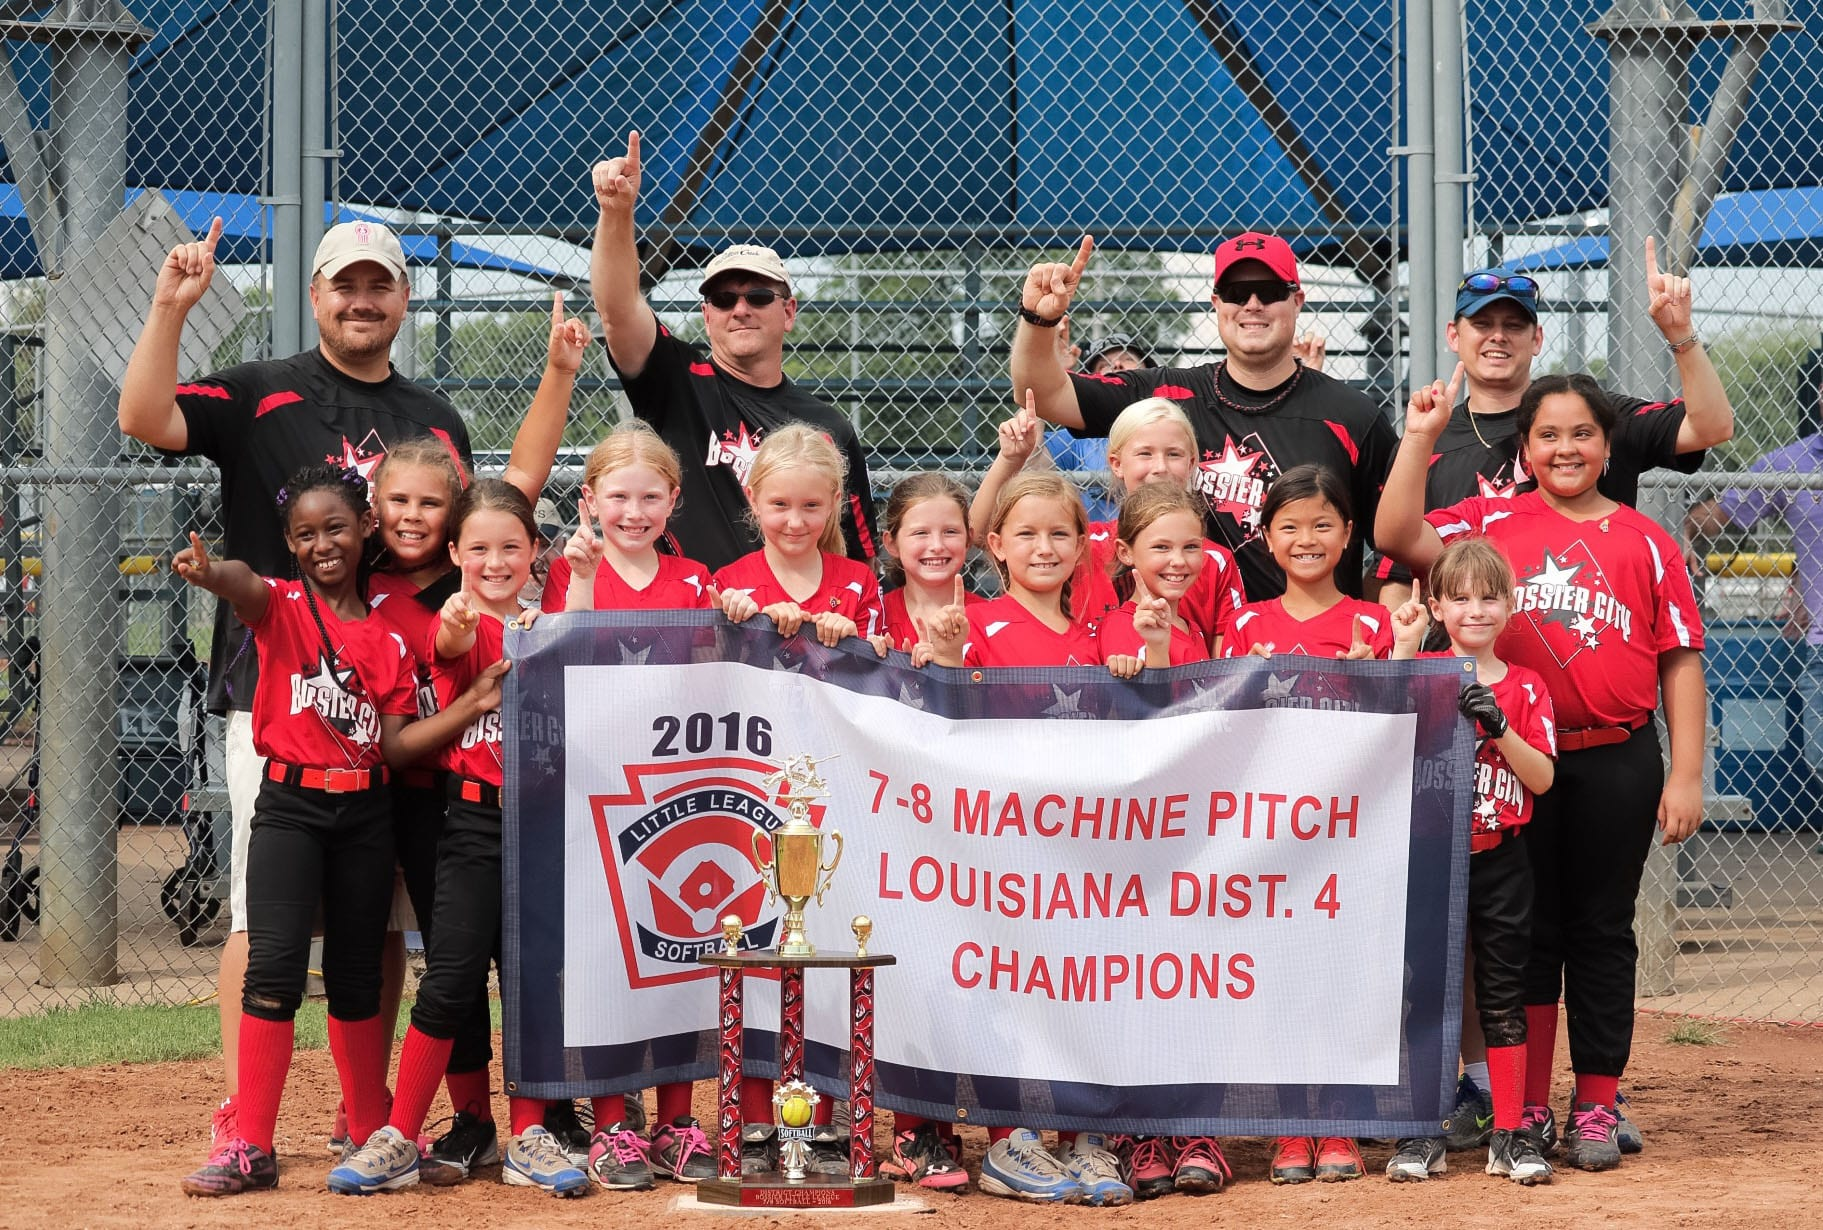 Courtesy Photo Little League Softball 7-8 Machine Pitch District 4 champions